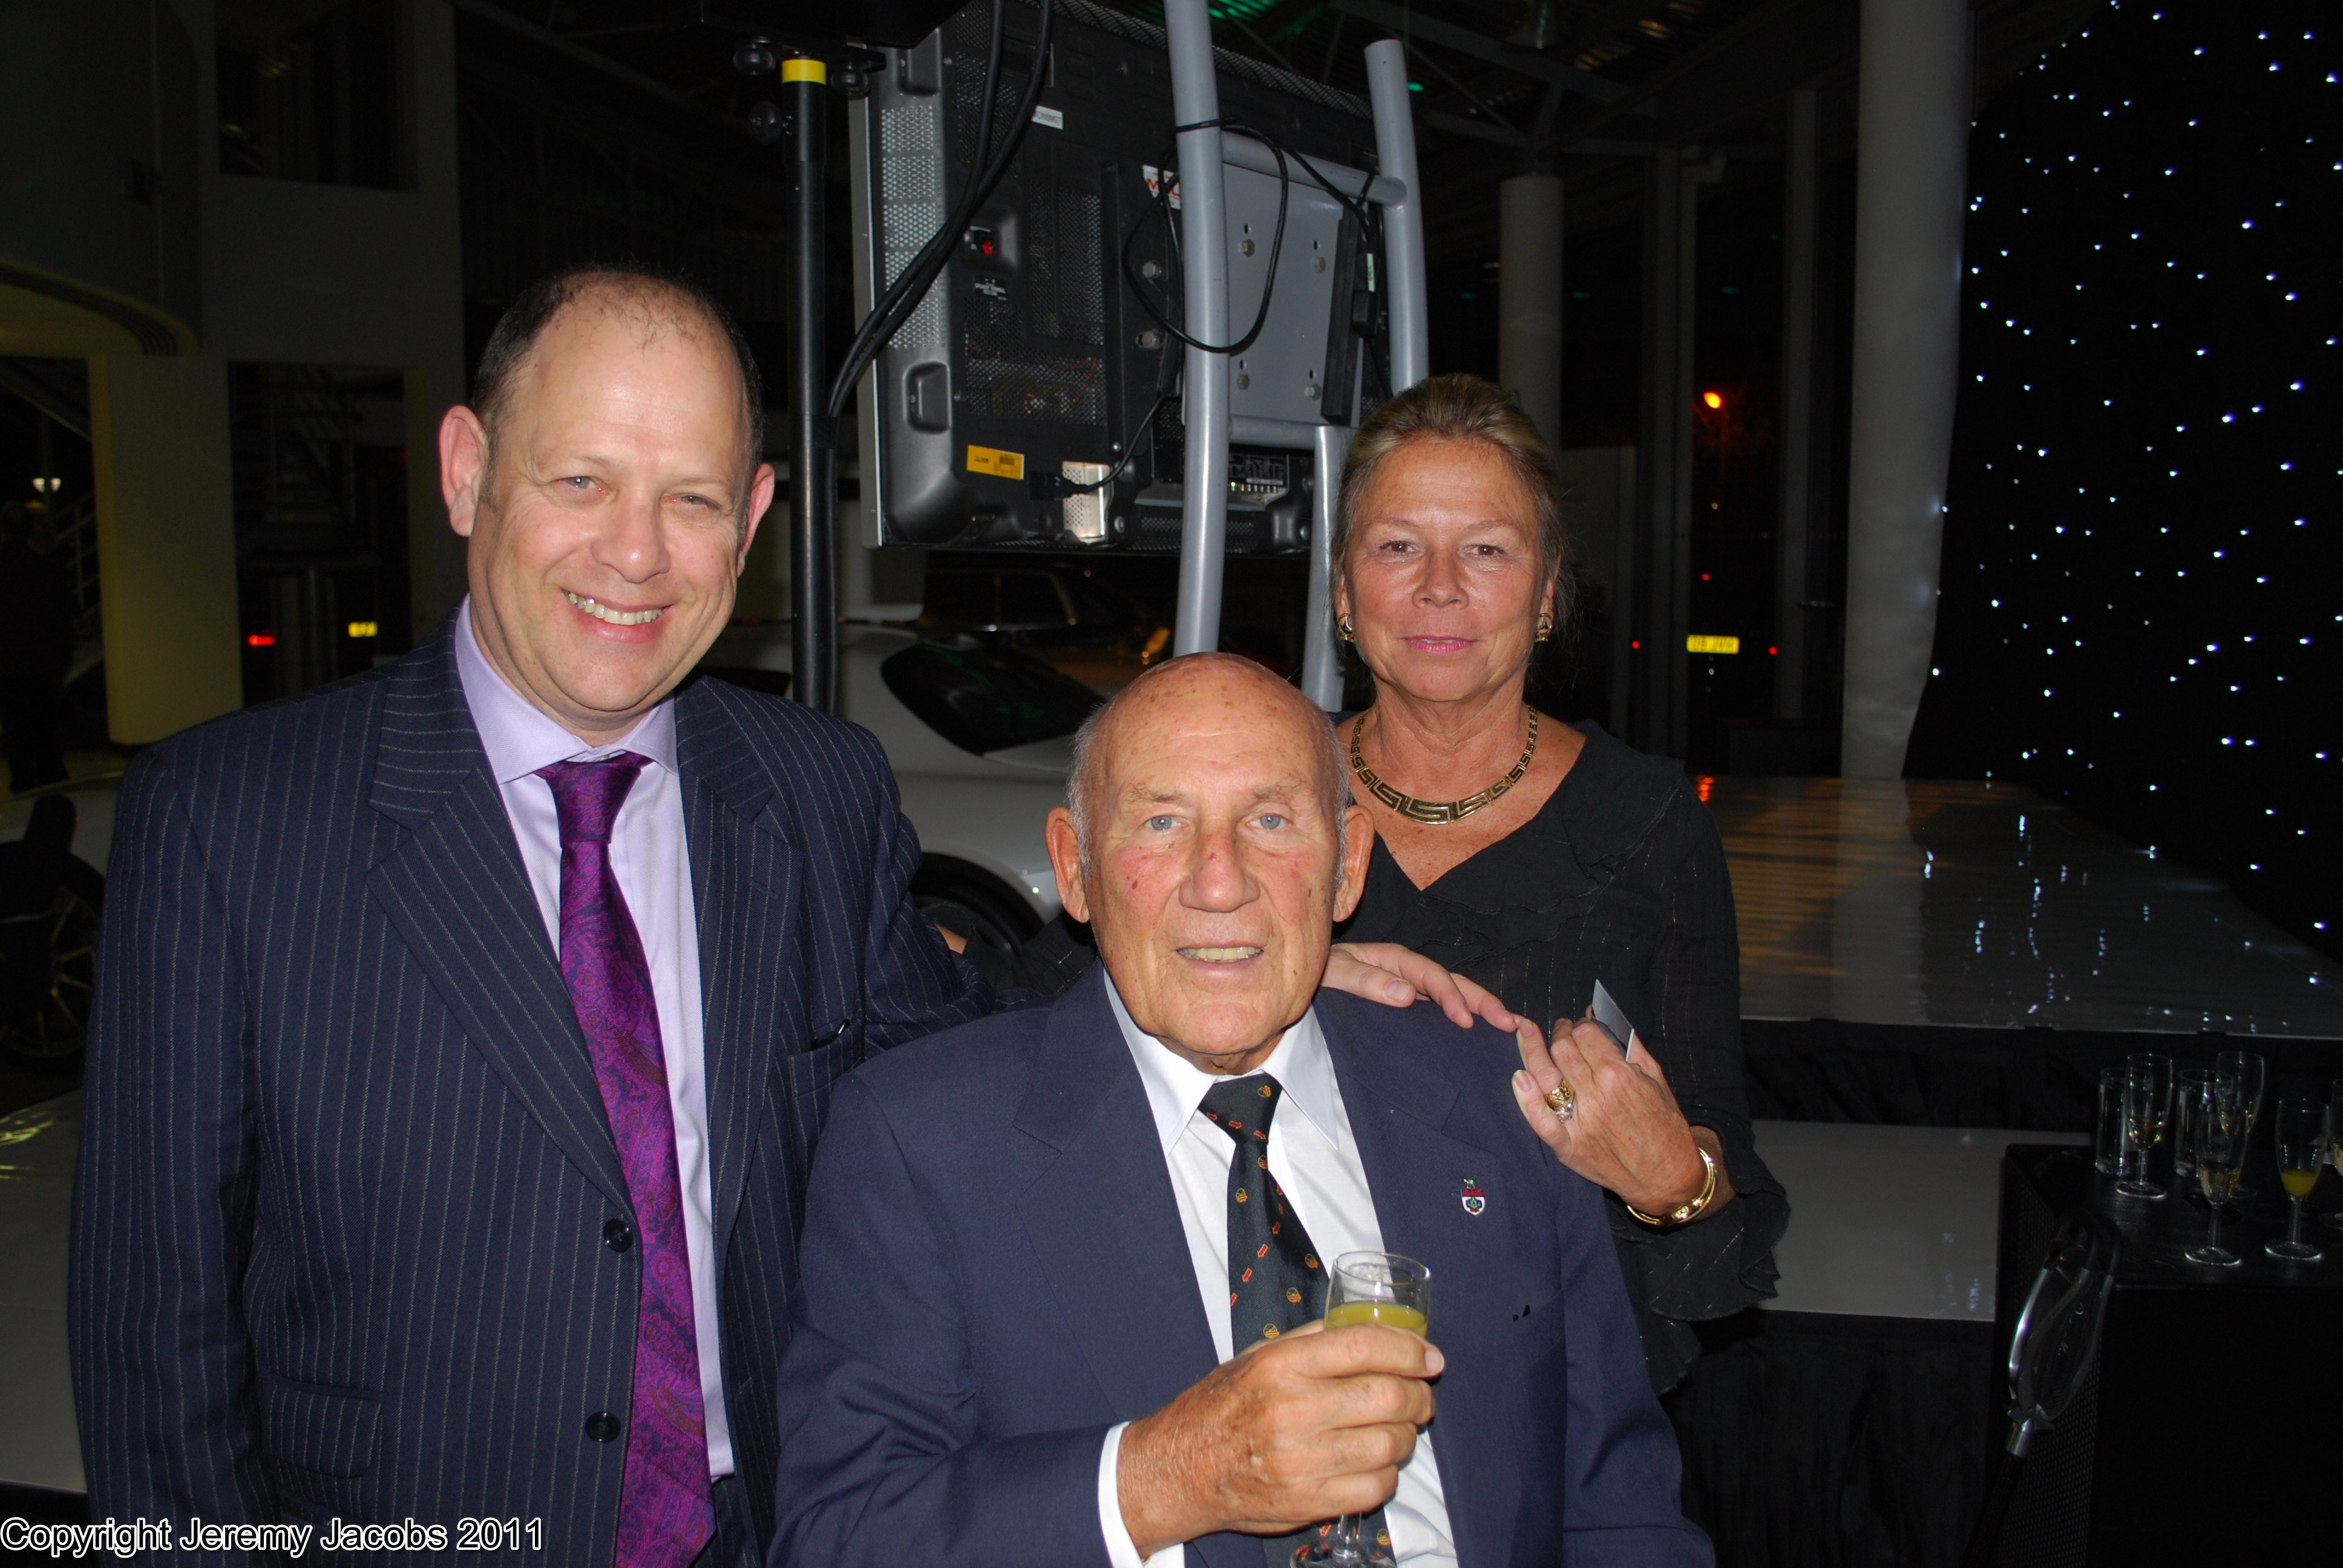 Jeremy-Jacobs-with-Stirling-Moss